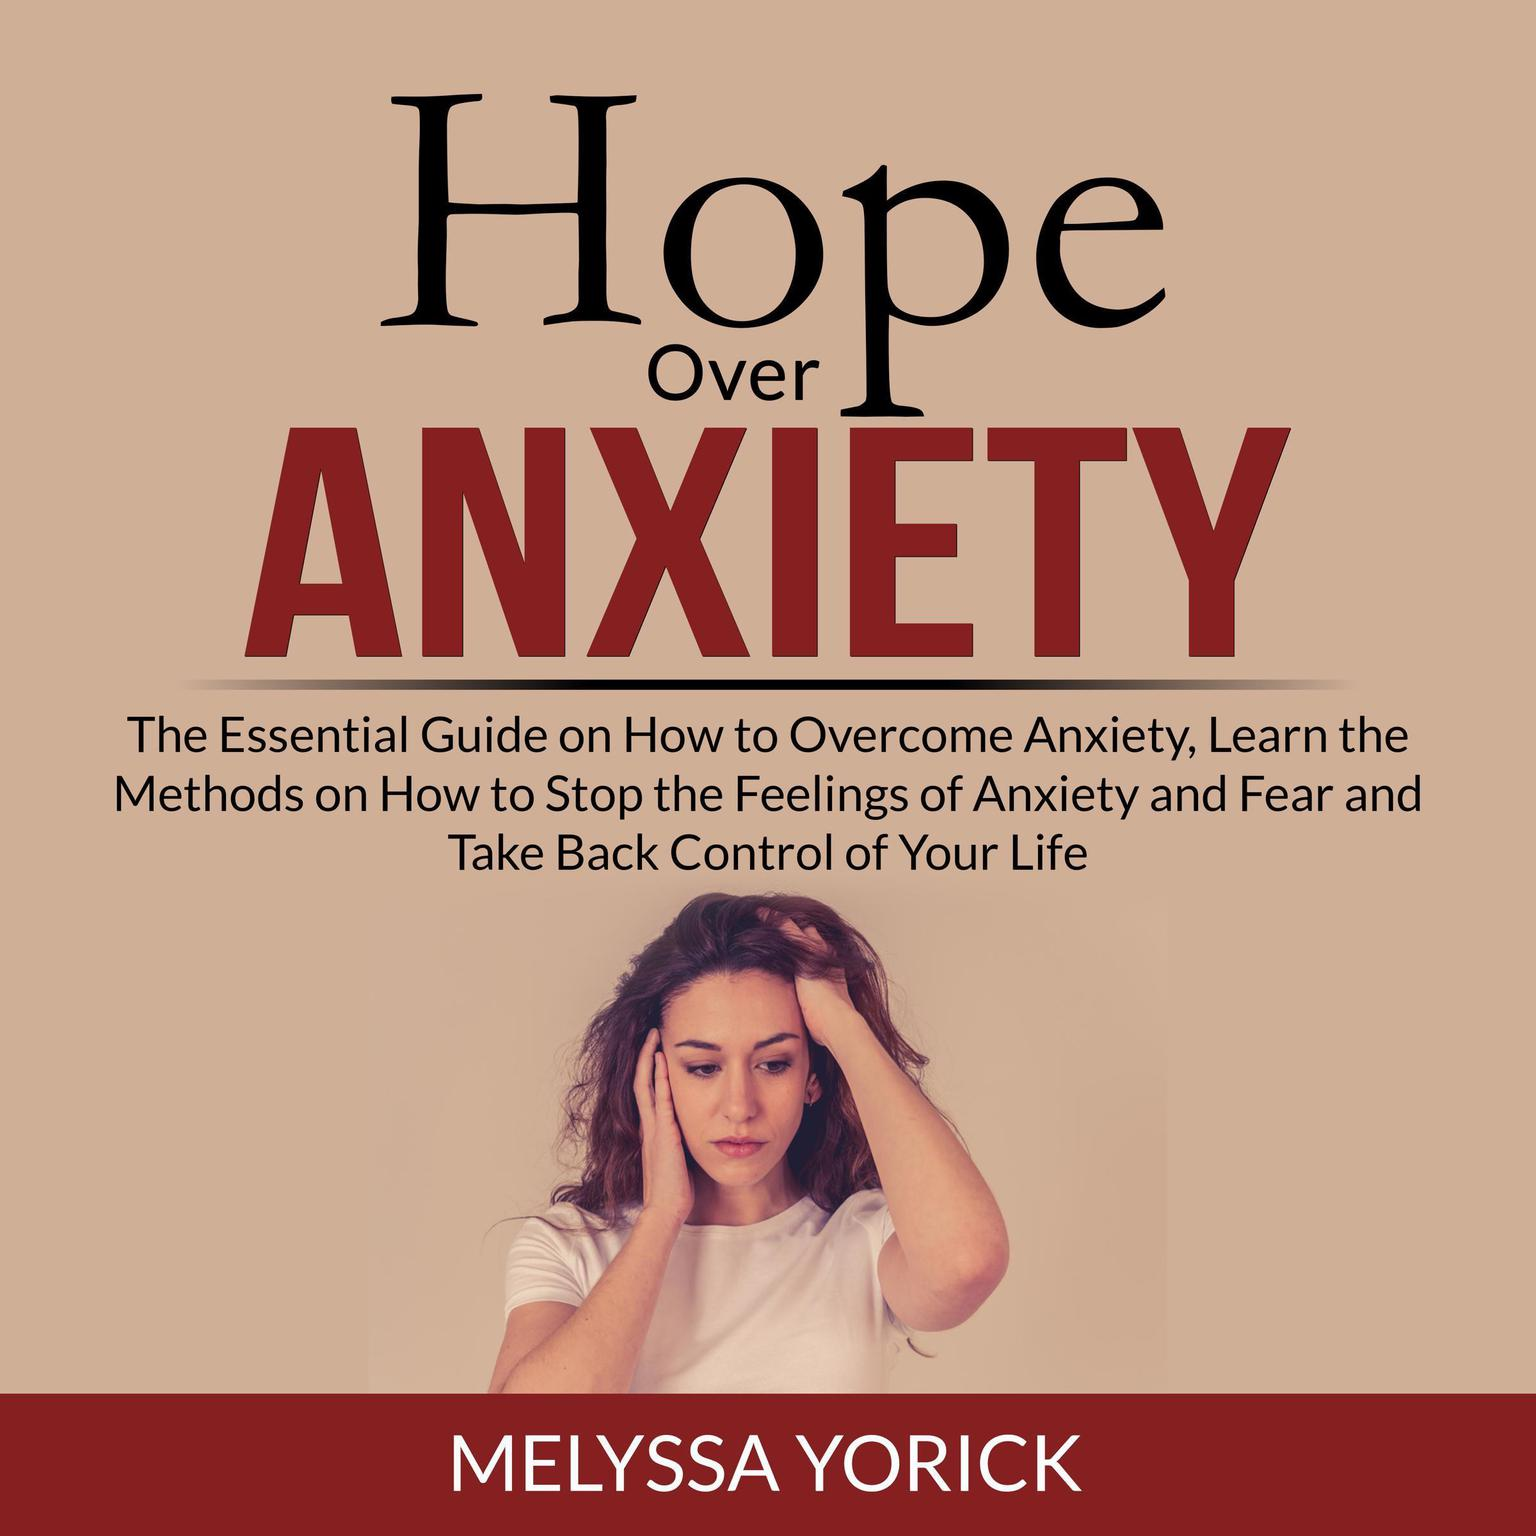 Hope Over Anxiety: The Essential Guide on How to Overcome Anxiety, Learn the Methods on How to Stop the Feelings of Anxiety and Fear and Take Back Control of Your Life Audiobook, by Melyssa Yorick